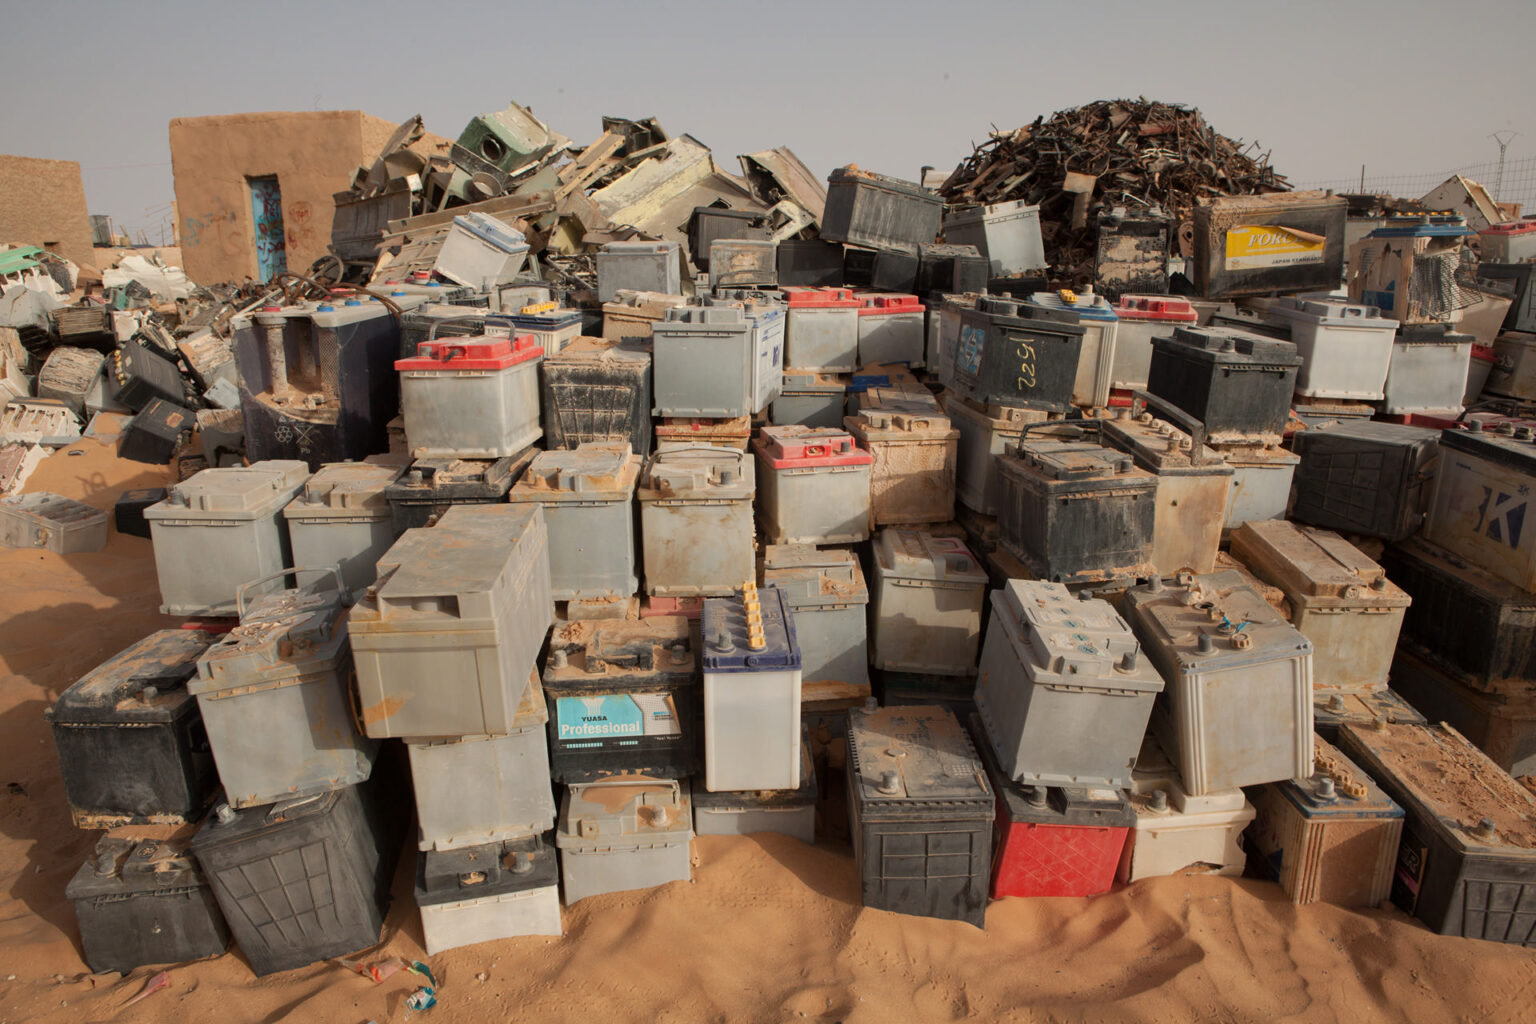 Car battery sales, Laayoune Refugee Camp, Algeria, 2015